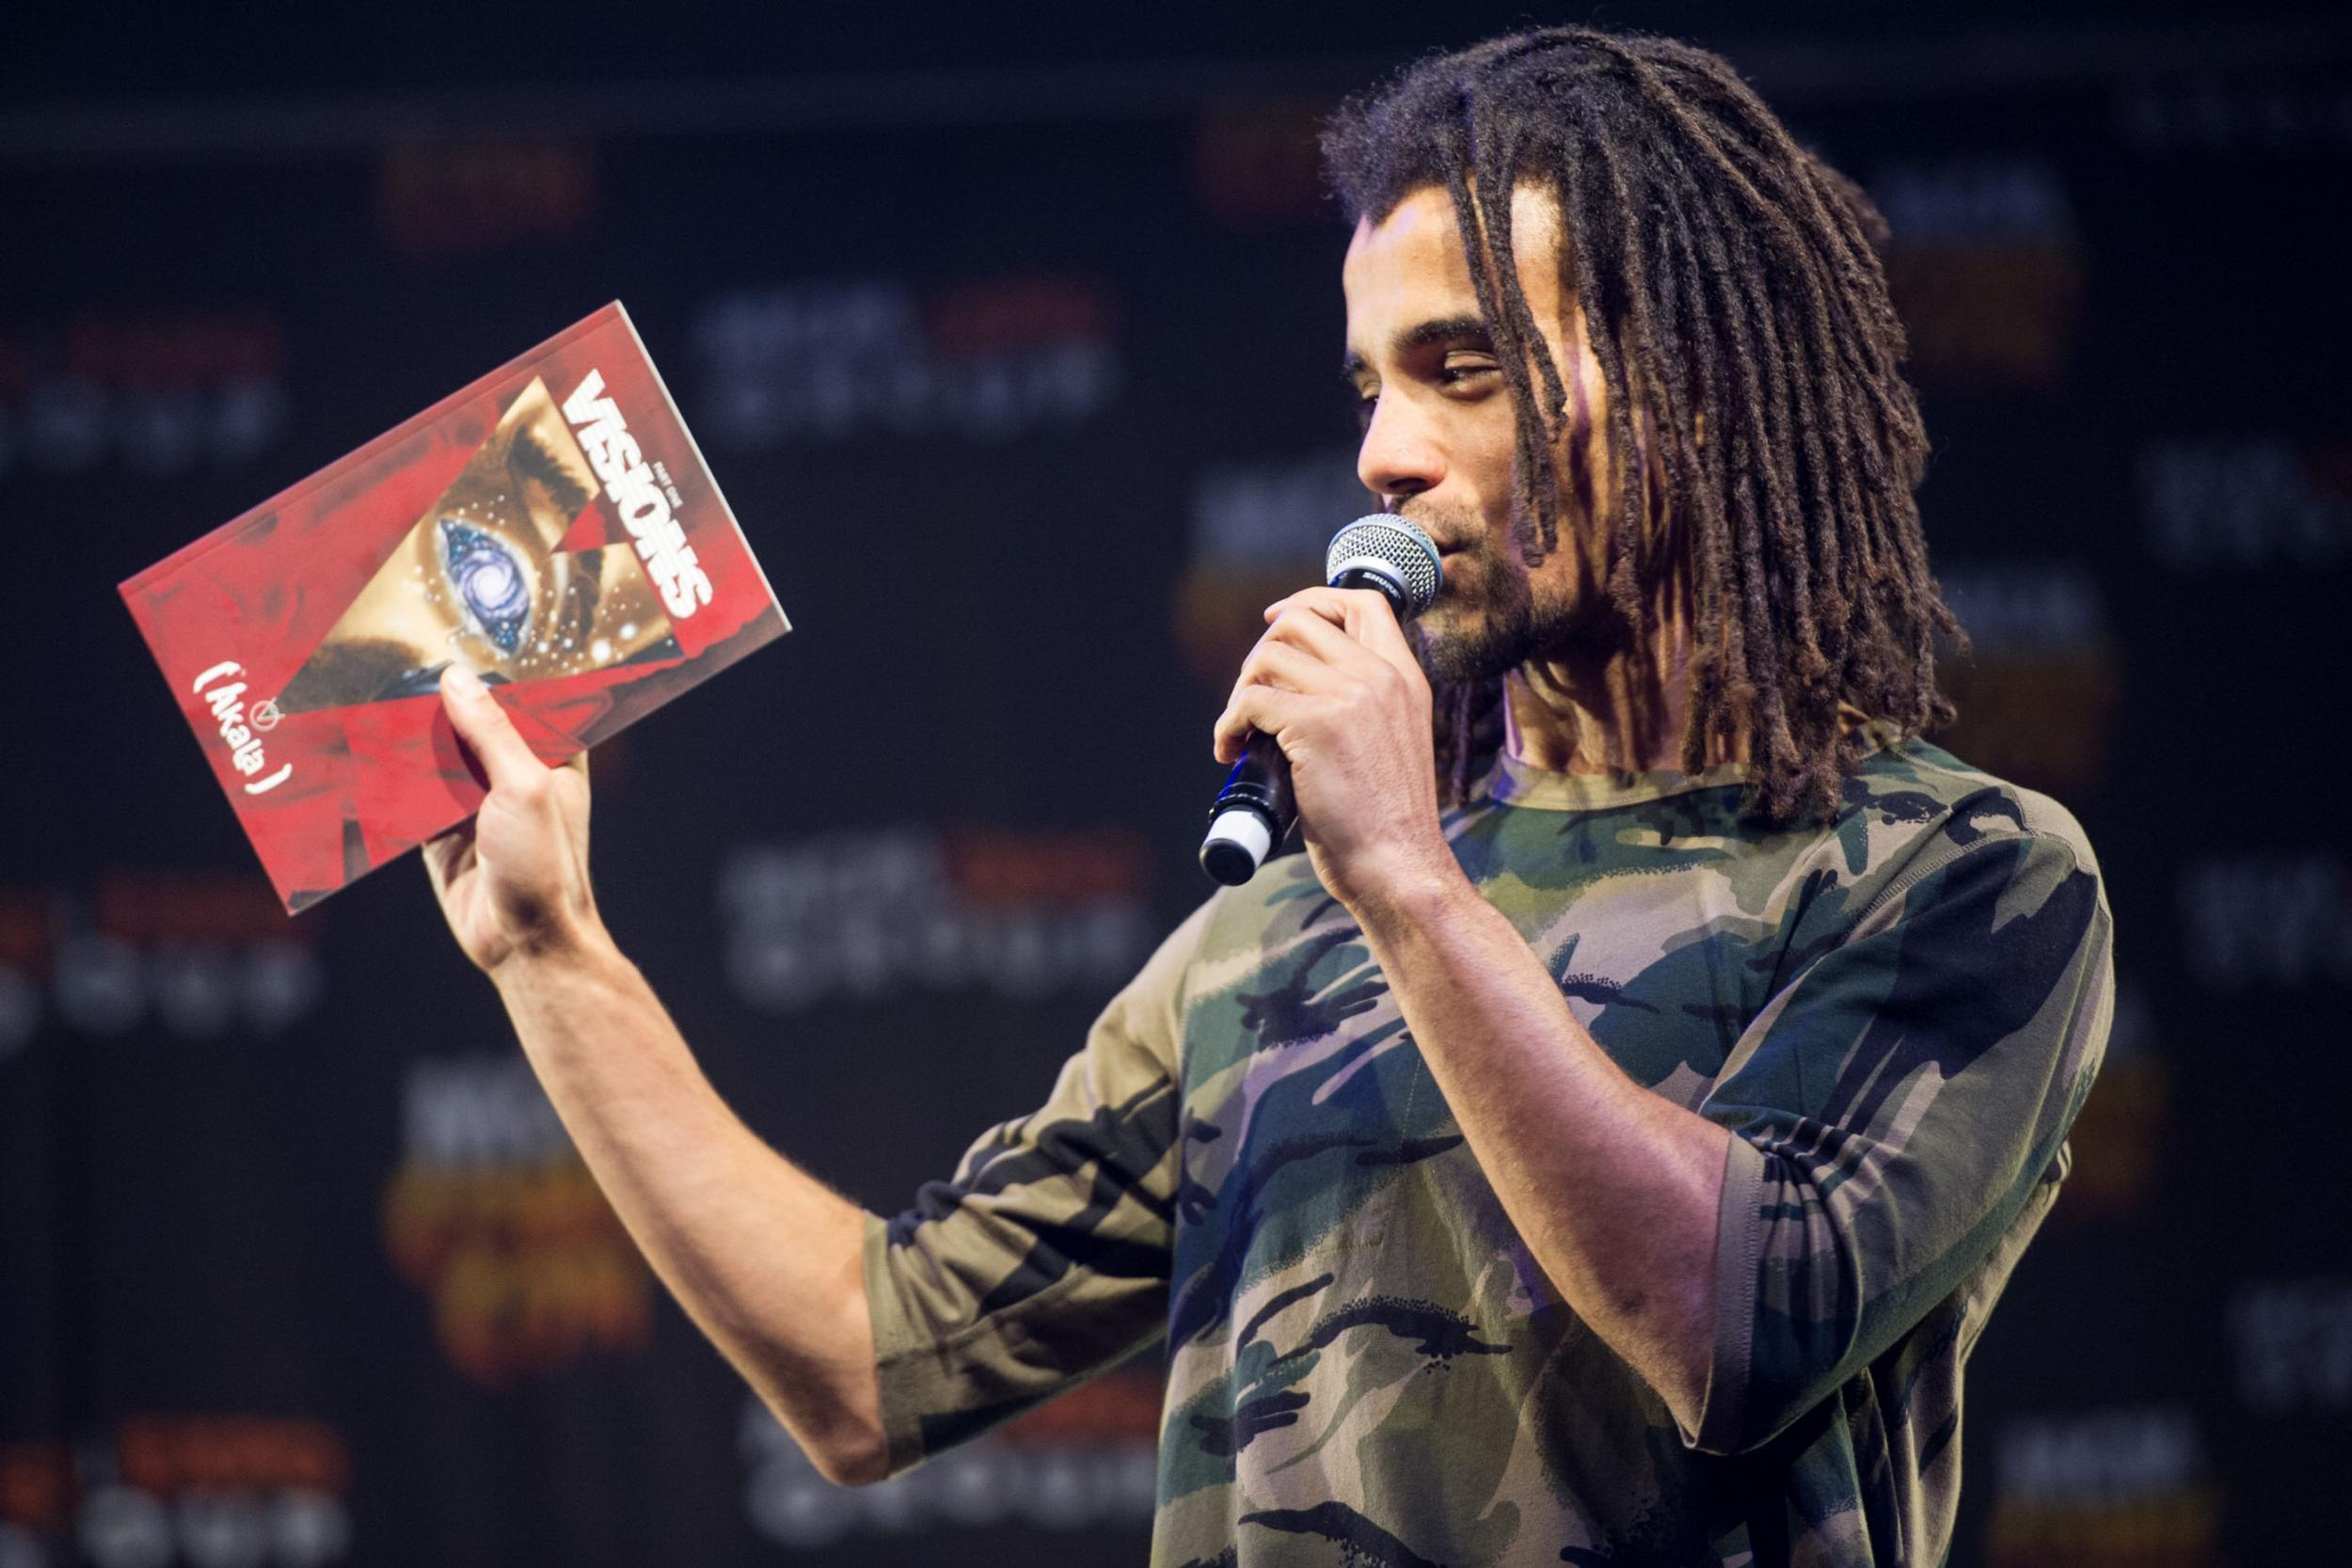 Akala, rapper and journalist